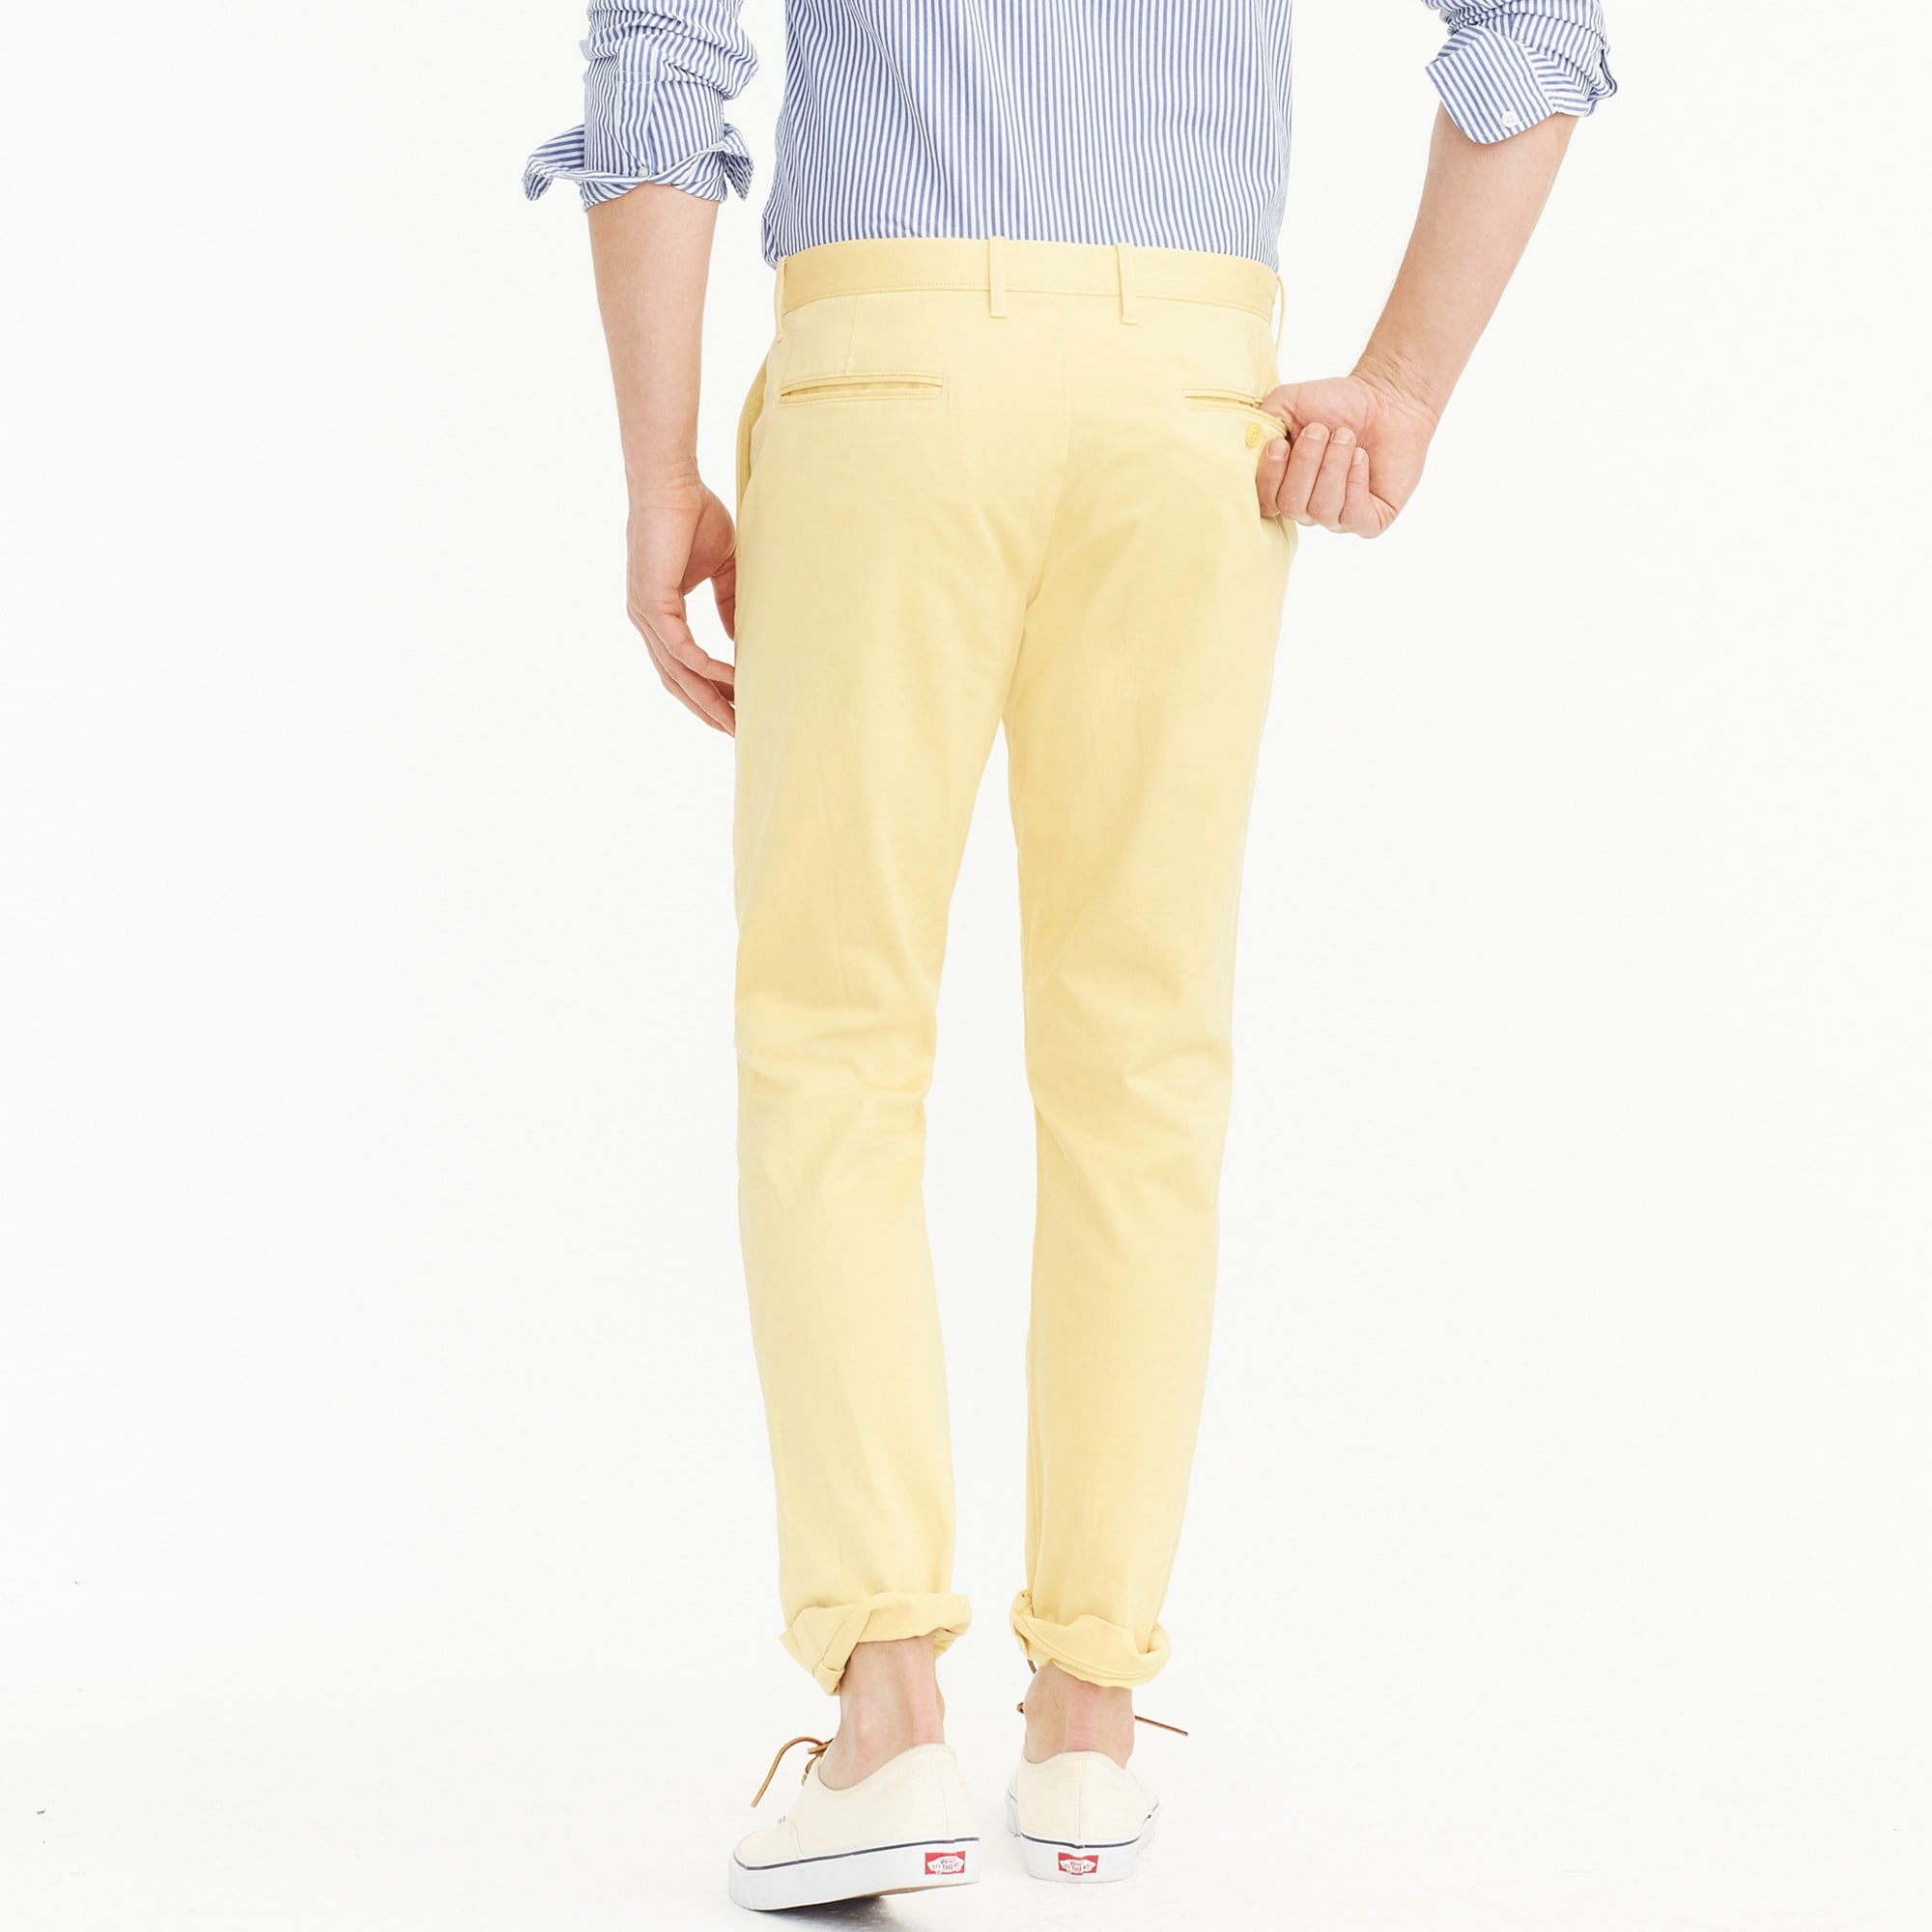 770 Straight-fit pant in stretch chino